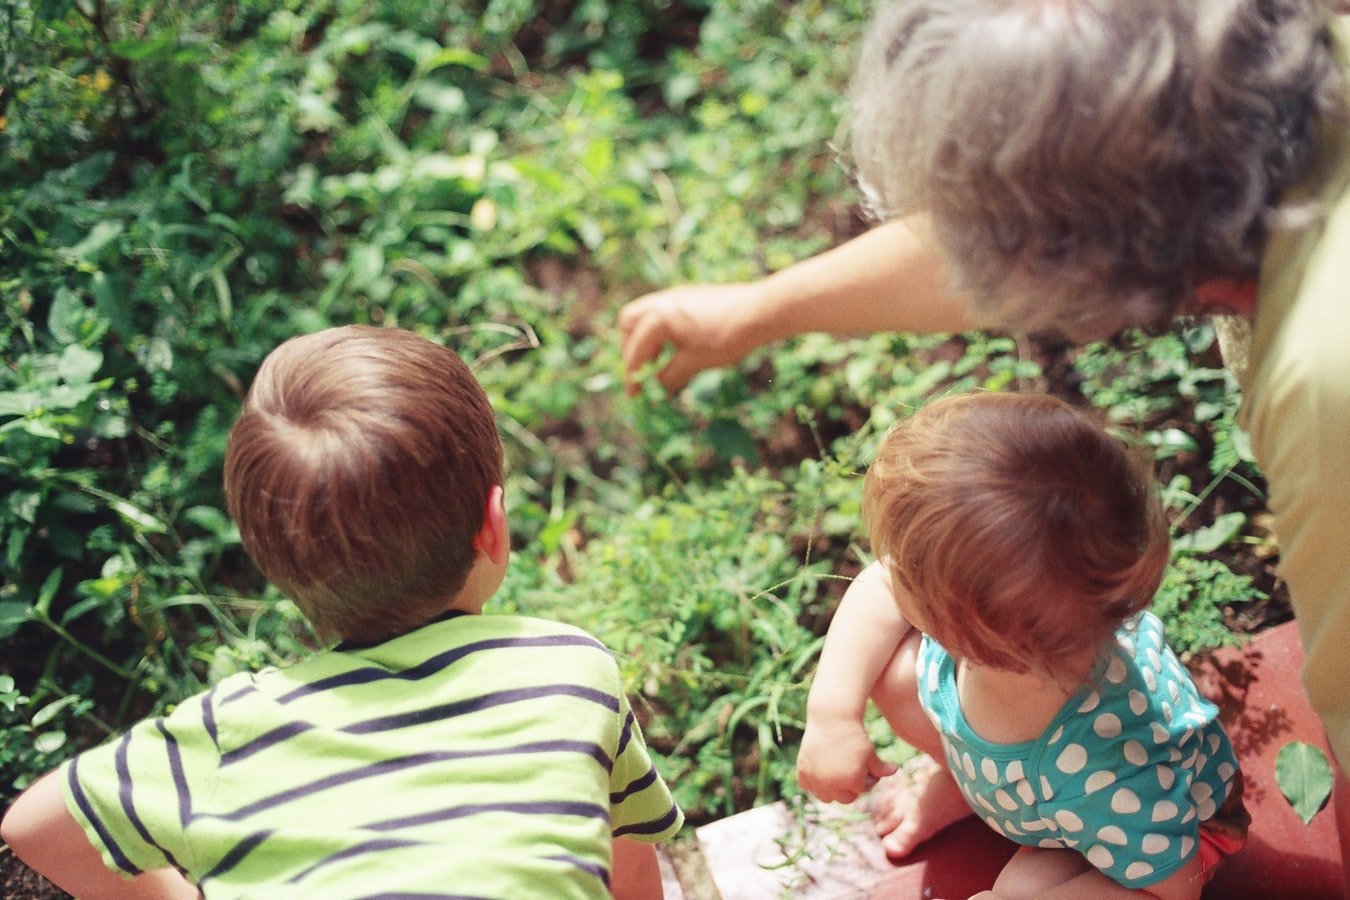 It's a good idea to keep grandparents involved with activities.